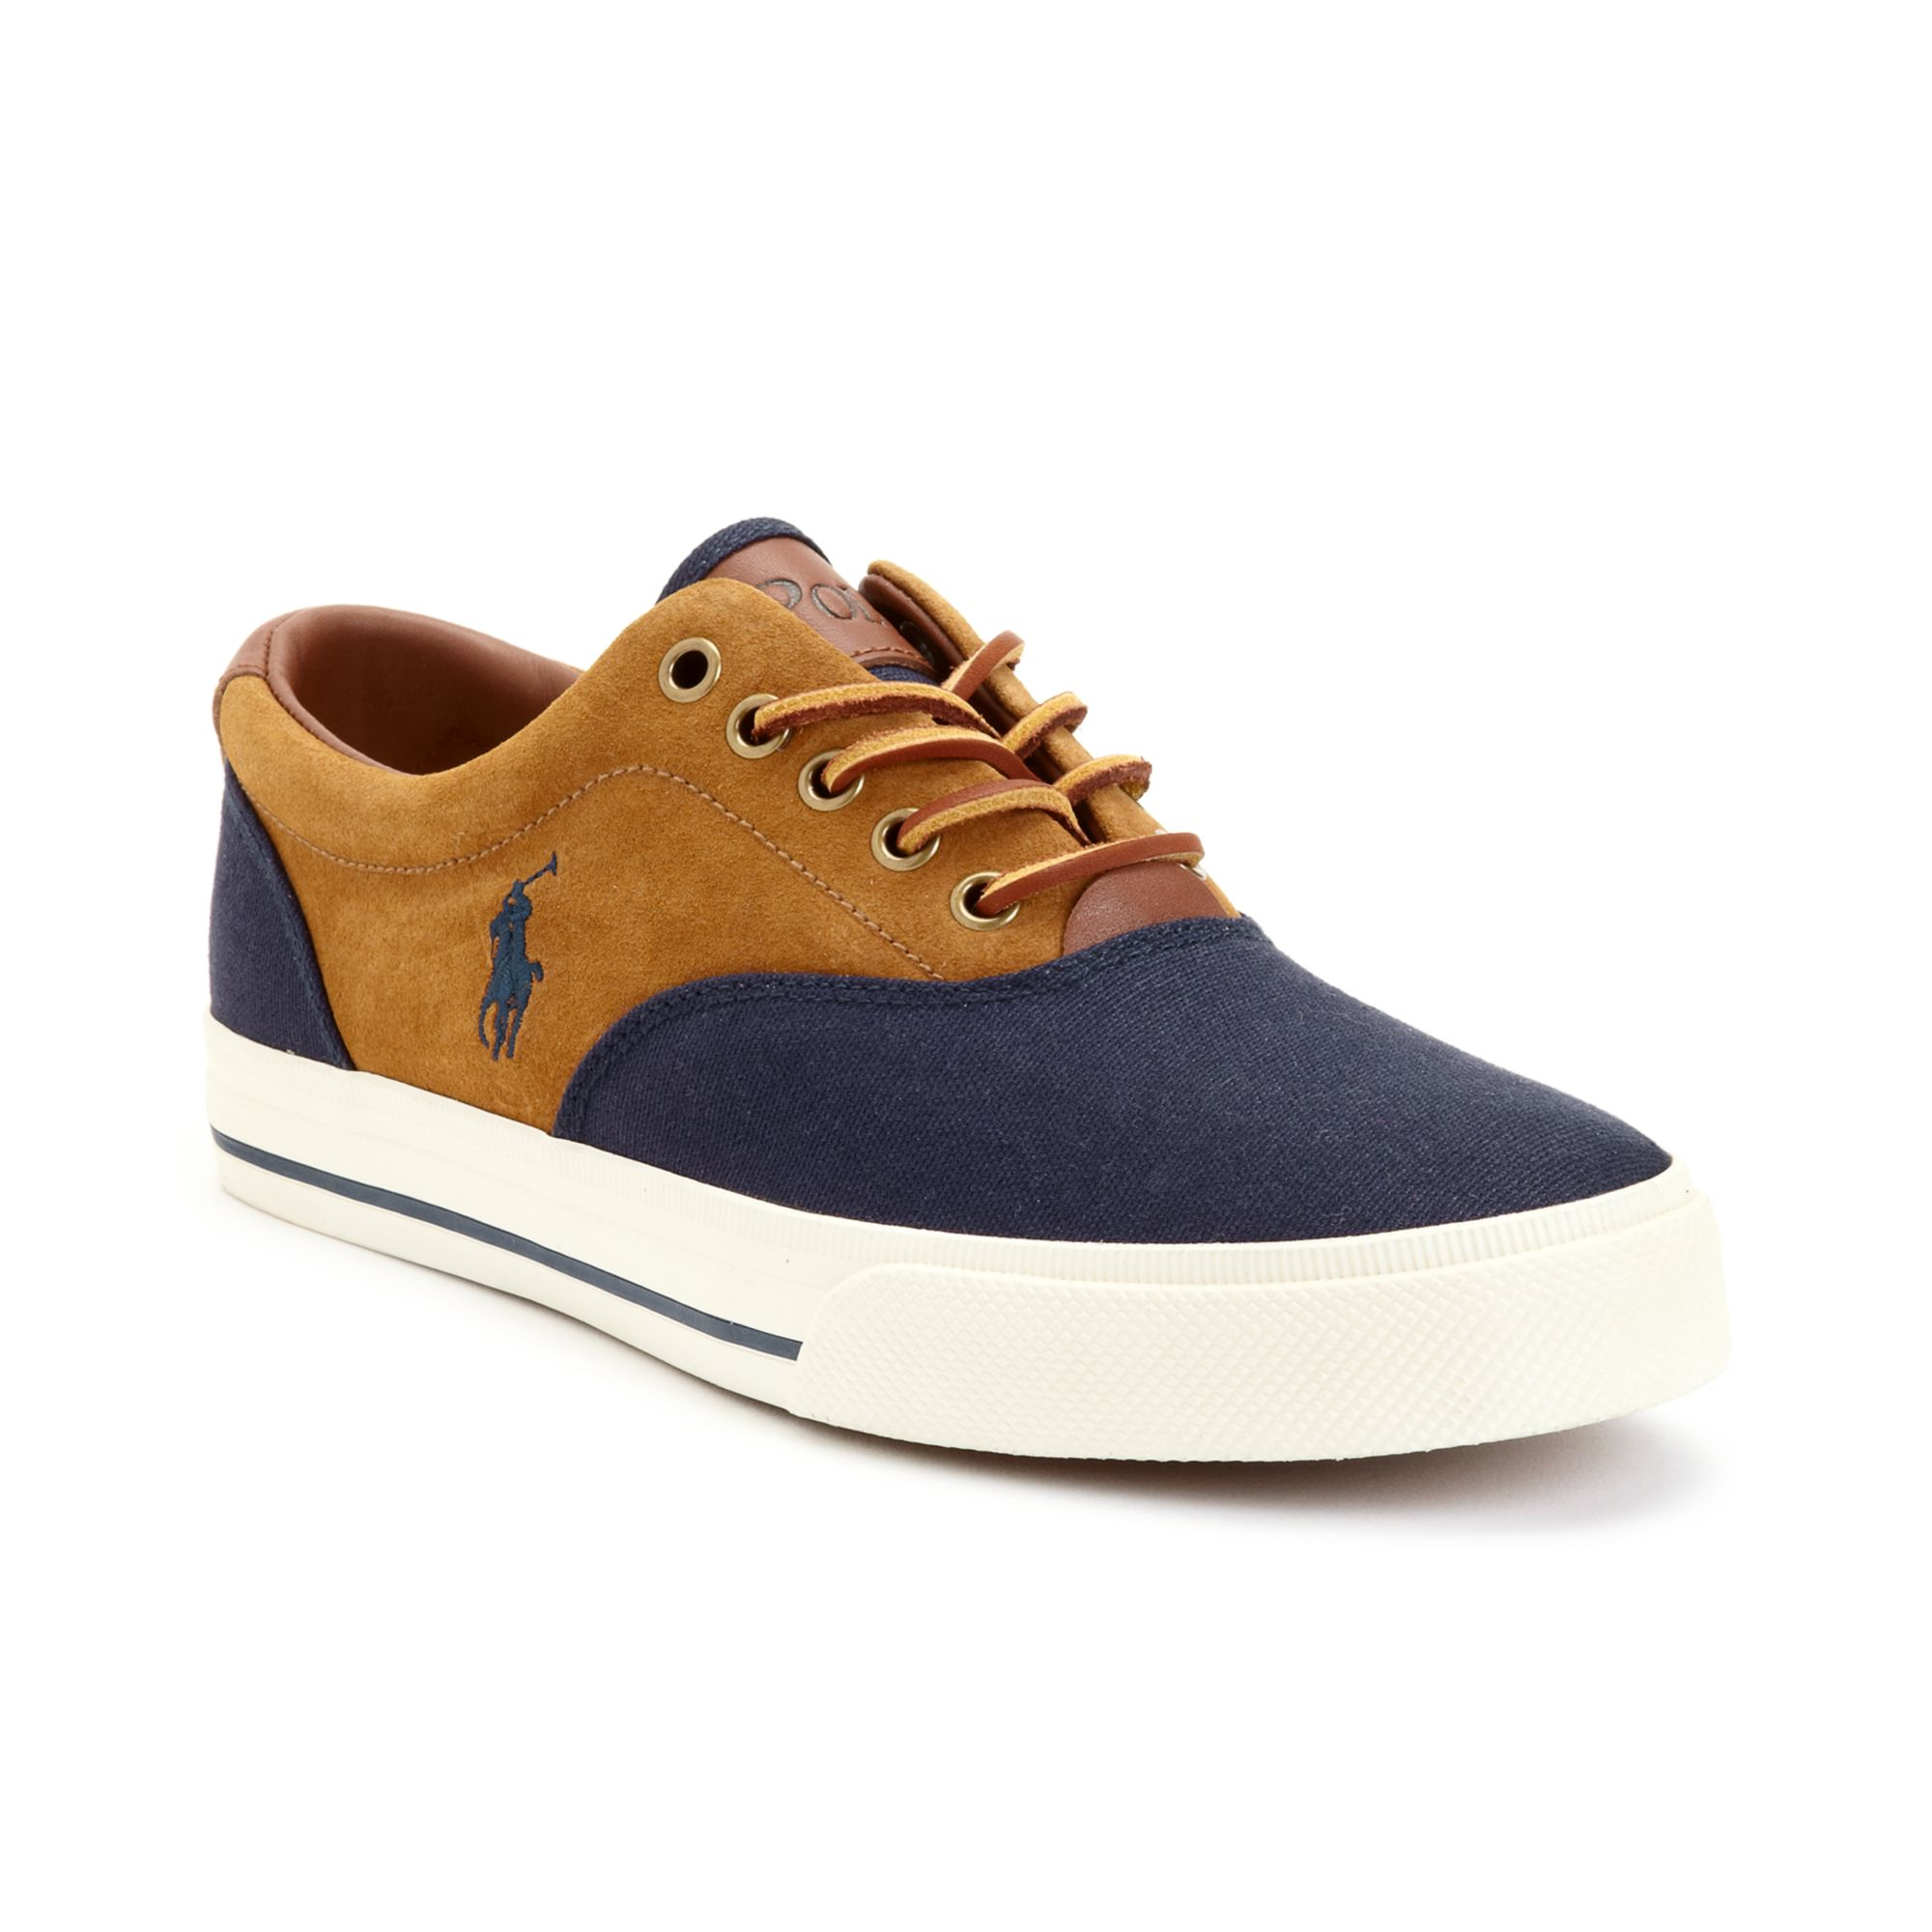 polo ralph lauren vaughn saddle sneakers in brown for men navy brown navy lyst. Black Bedroom Furniture Sets. Home Design Ideas